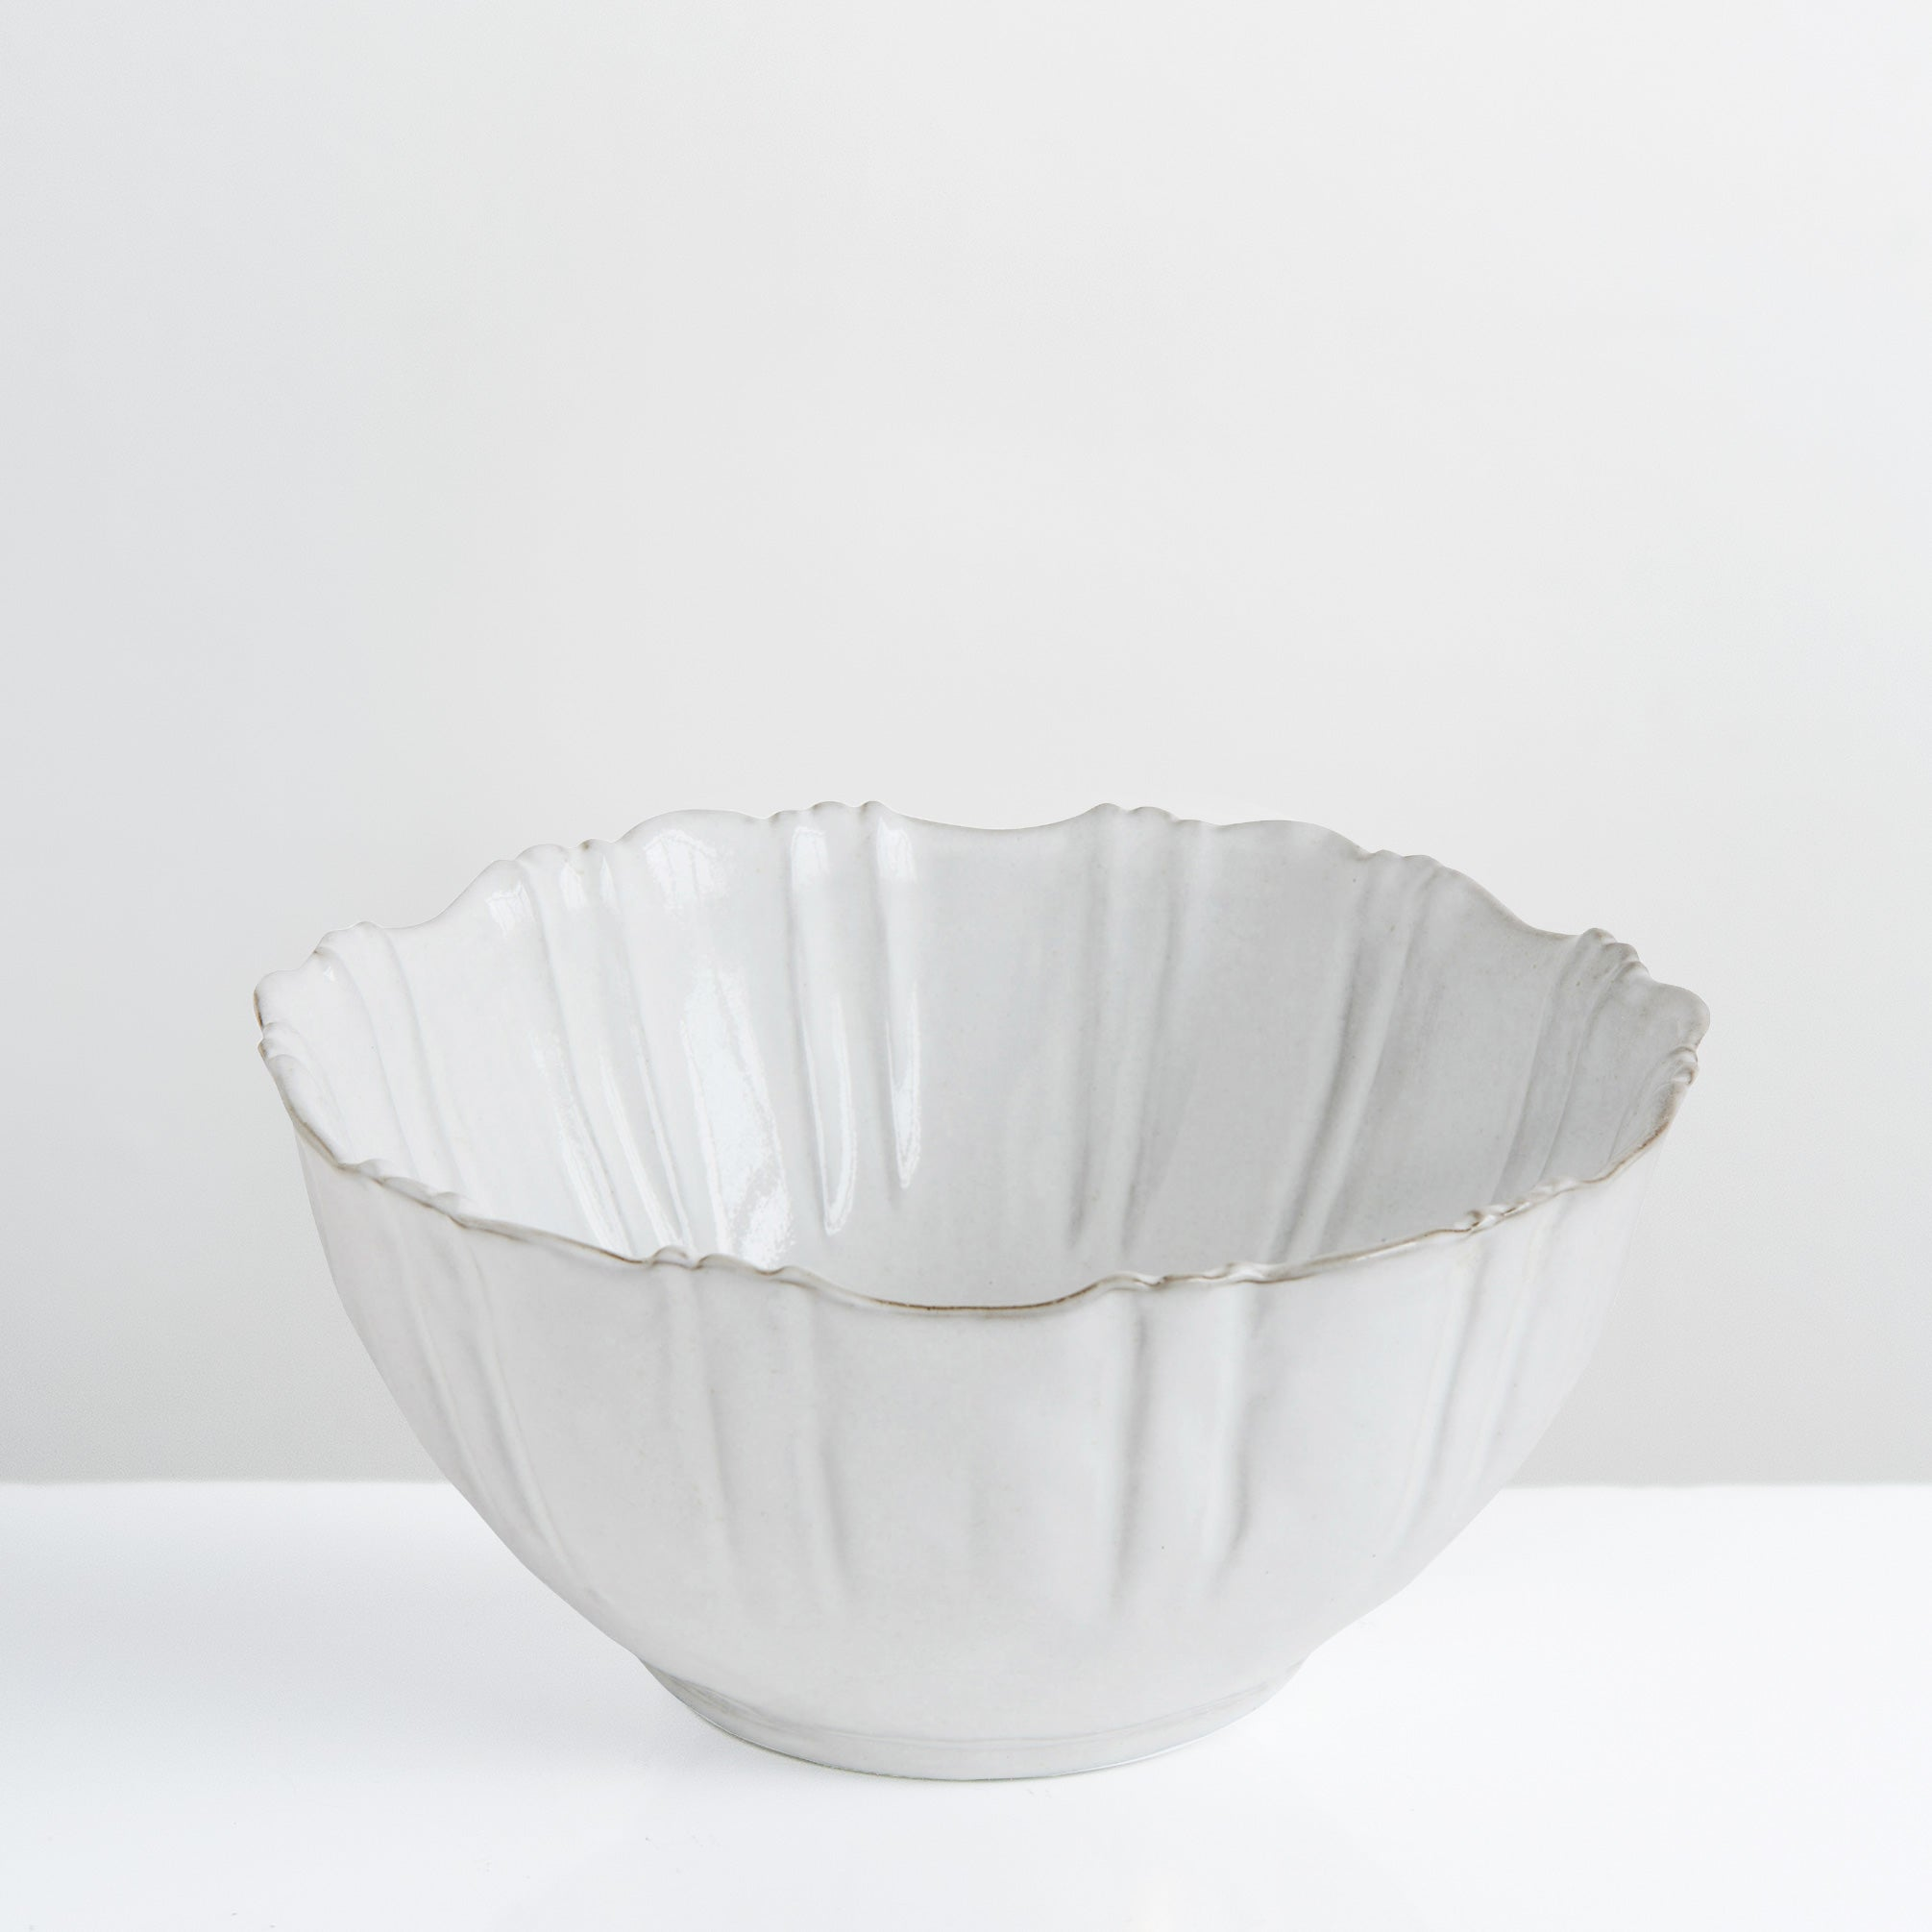 Handmade white glazed large Flora bowl